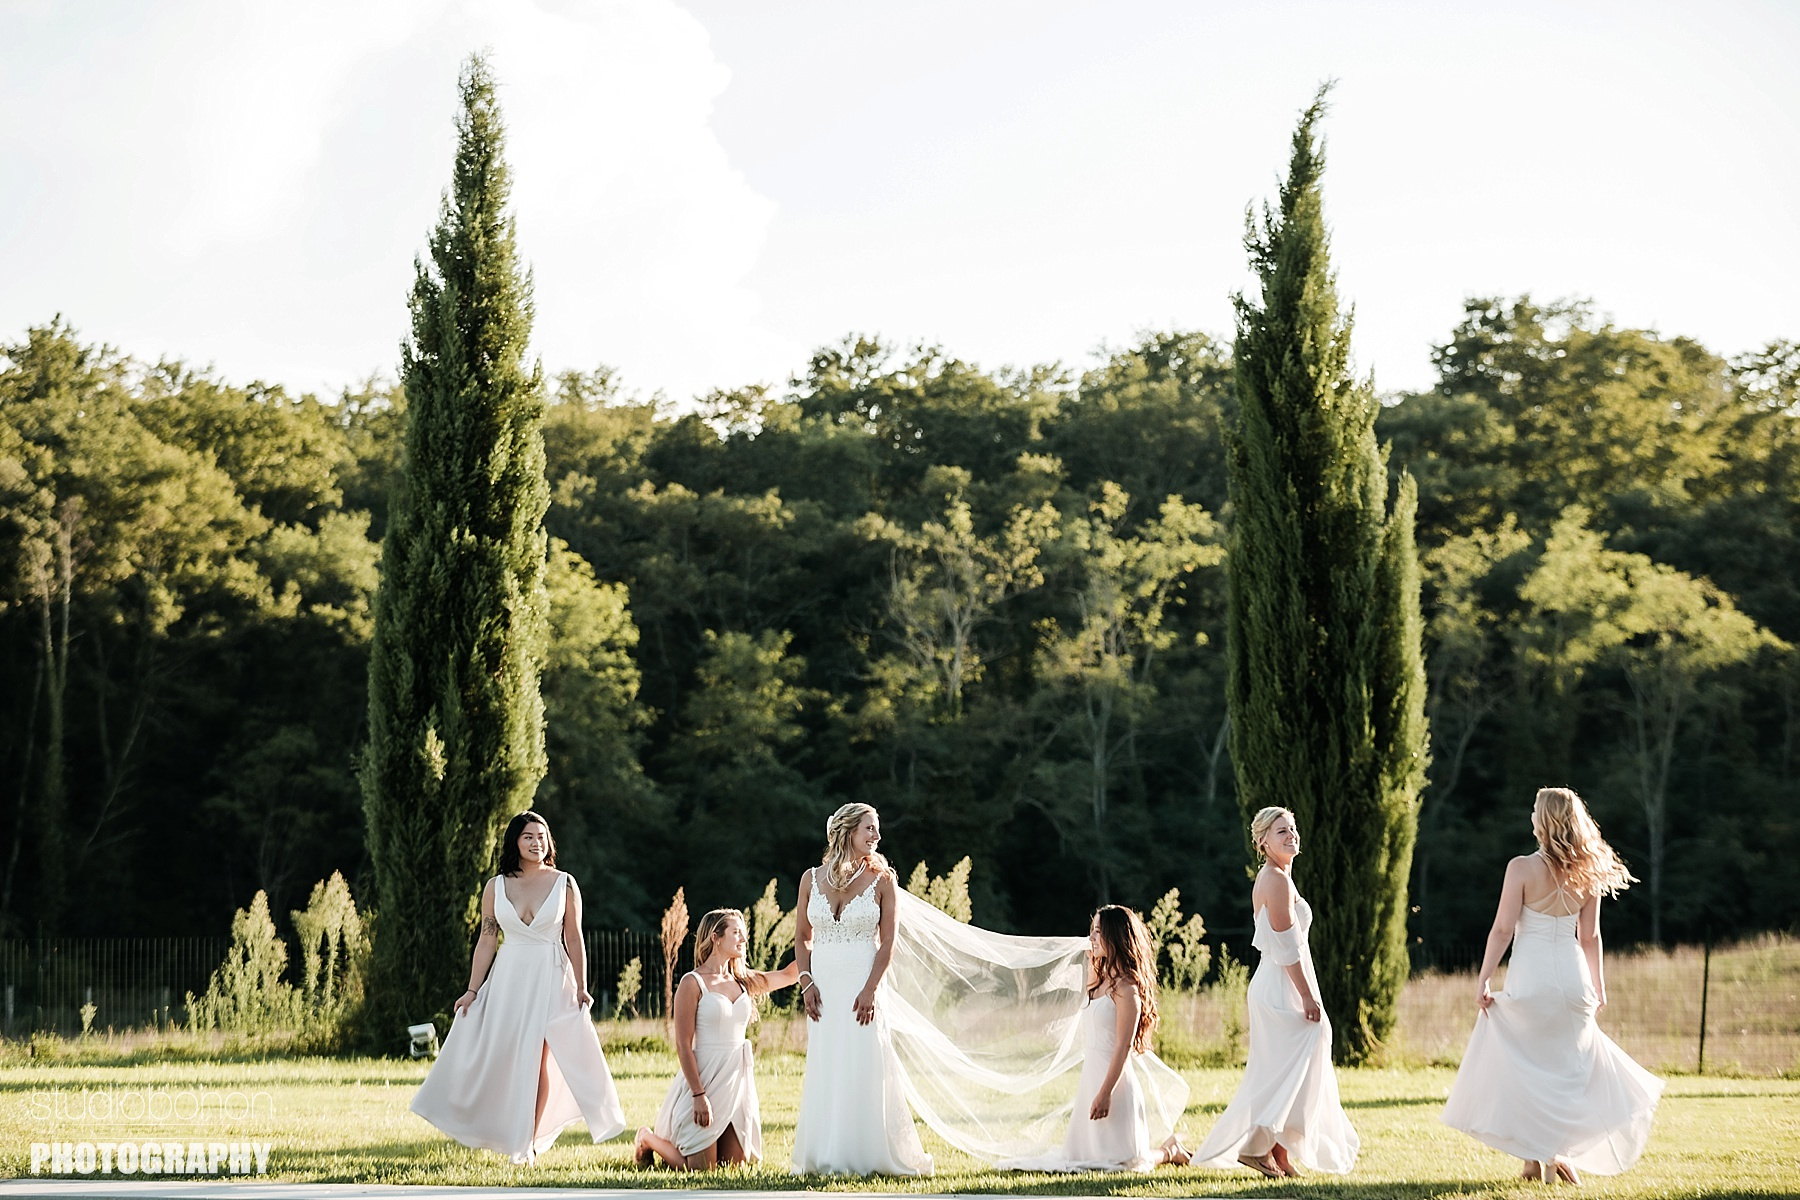 Country Wedding in Tuscany countryside at Tenuta Canto alla Moraia - Bridal Party - Photo by the wedding photographers in Tuscany based Florence Studio Bonon Photography.